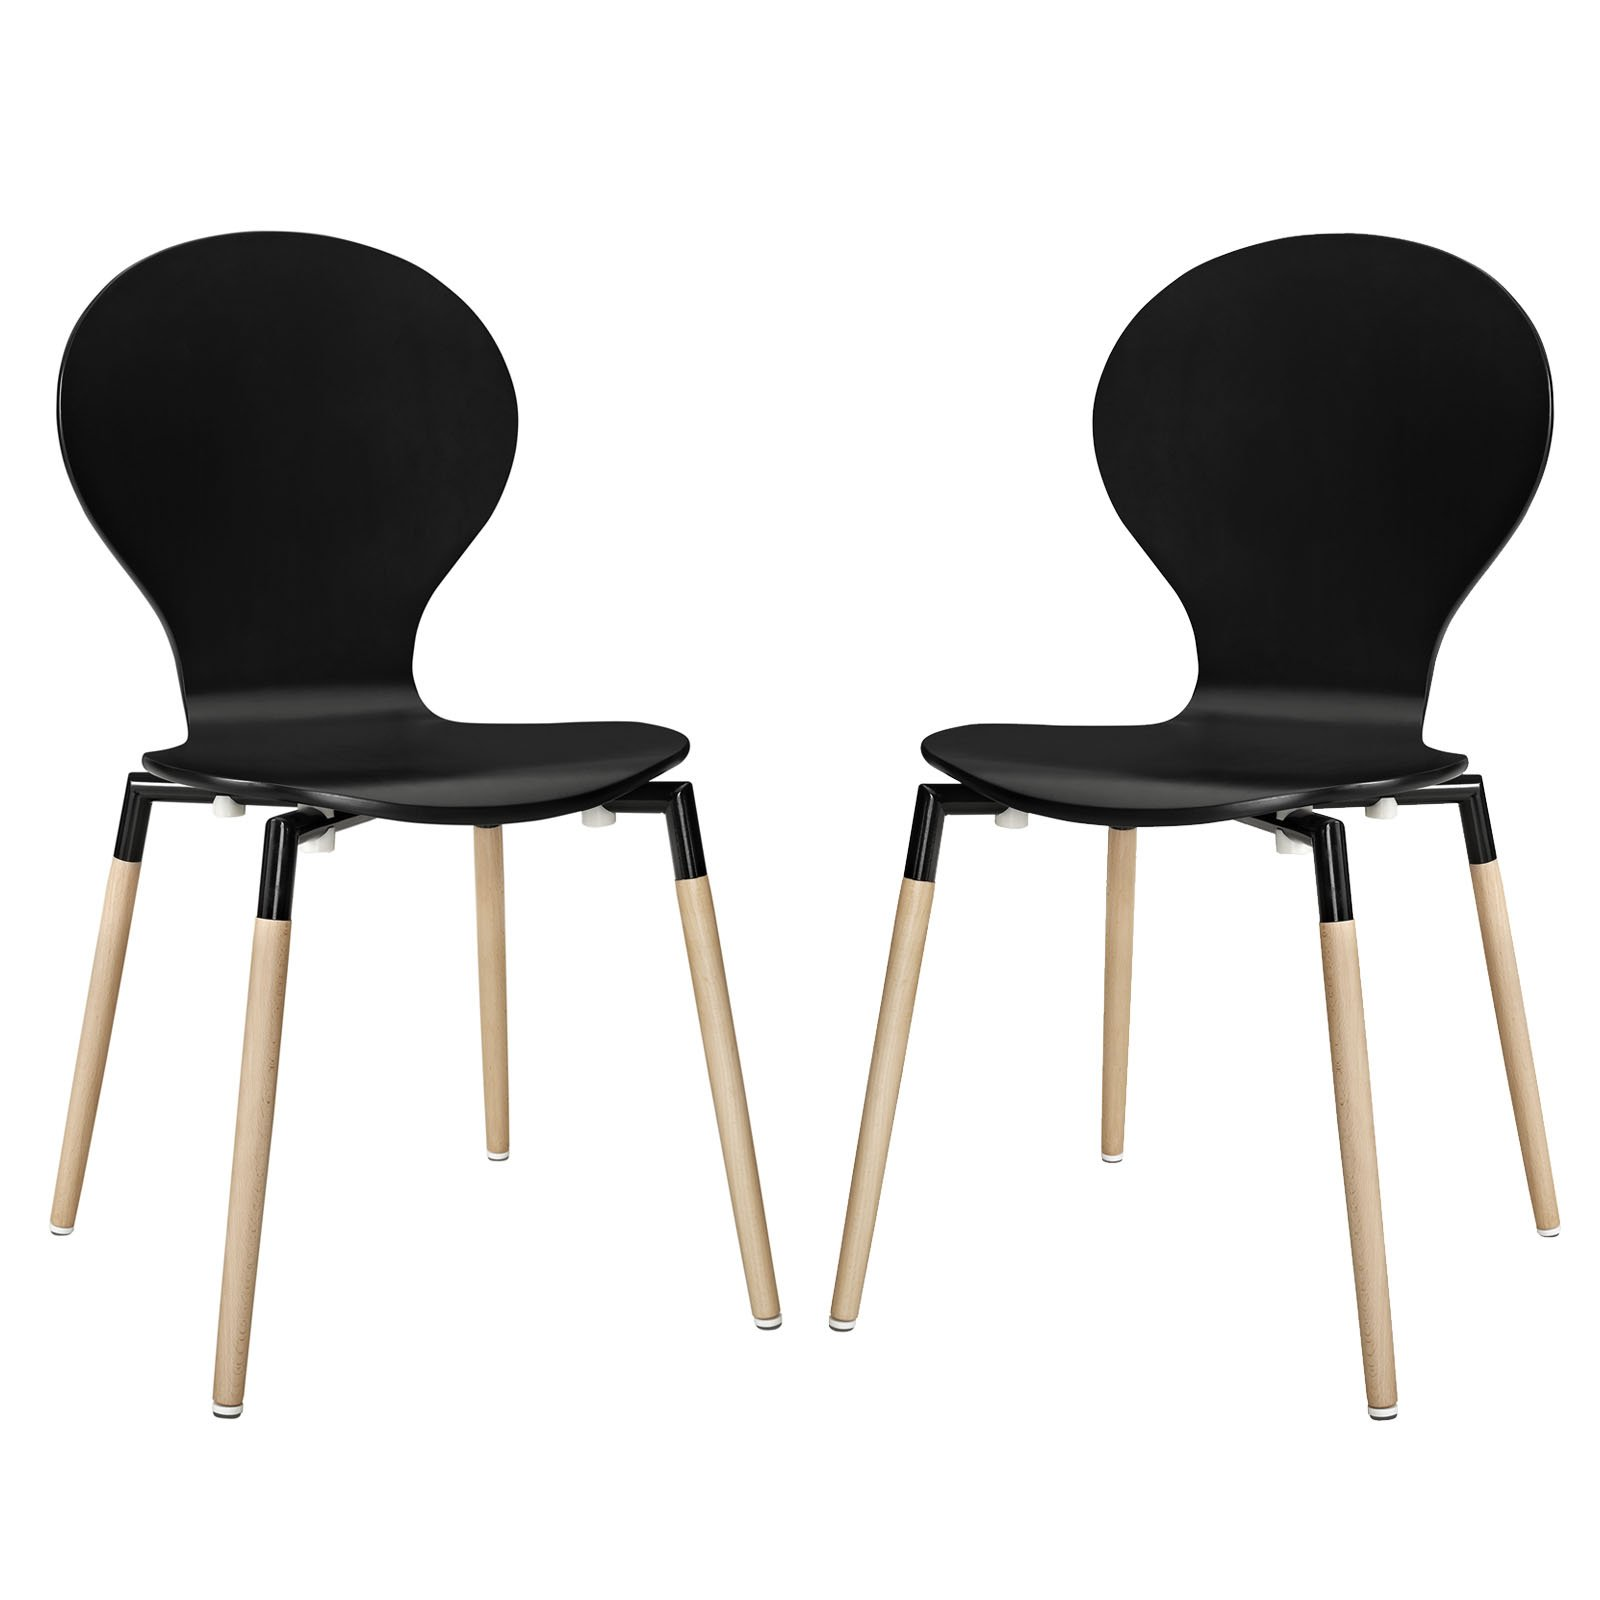 Modway Path Mid-Century Modern Two Kitchen and Dining Room Chairs in Black